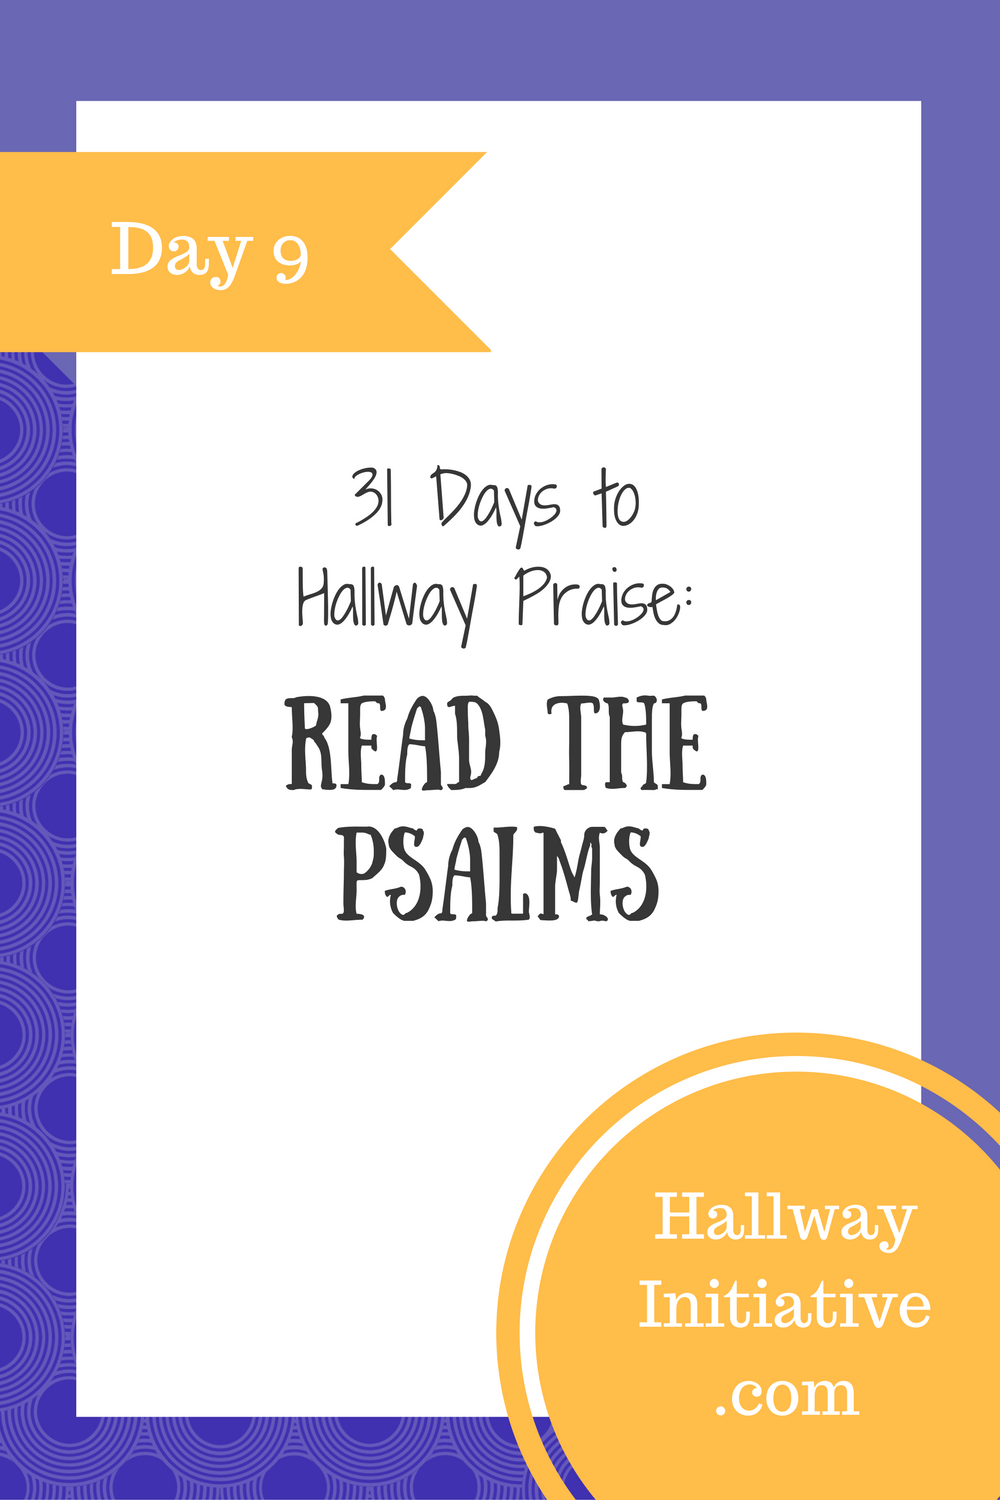 Day 9: read the Psalms